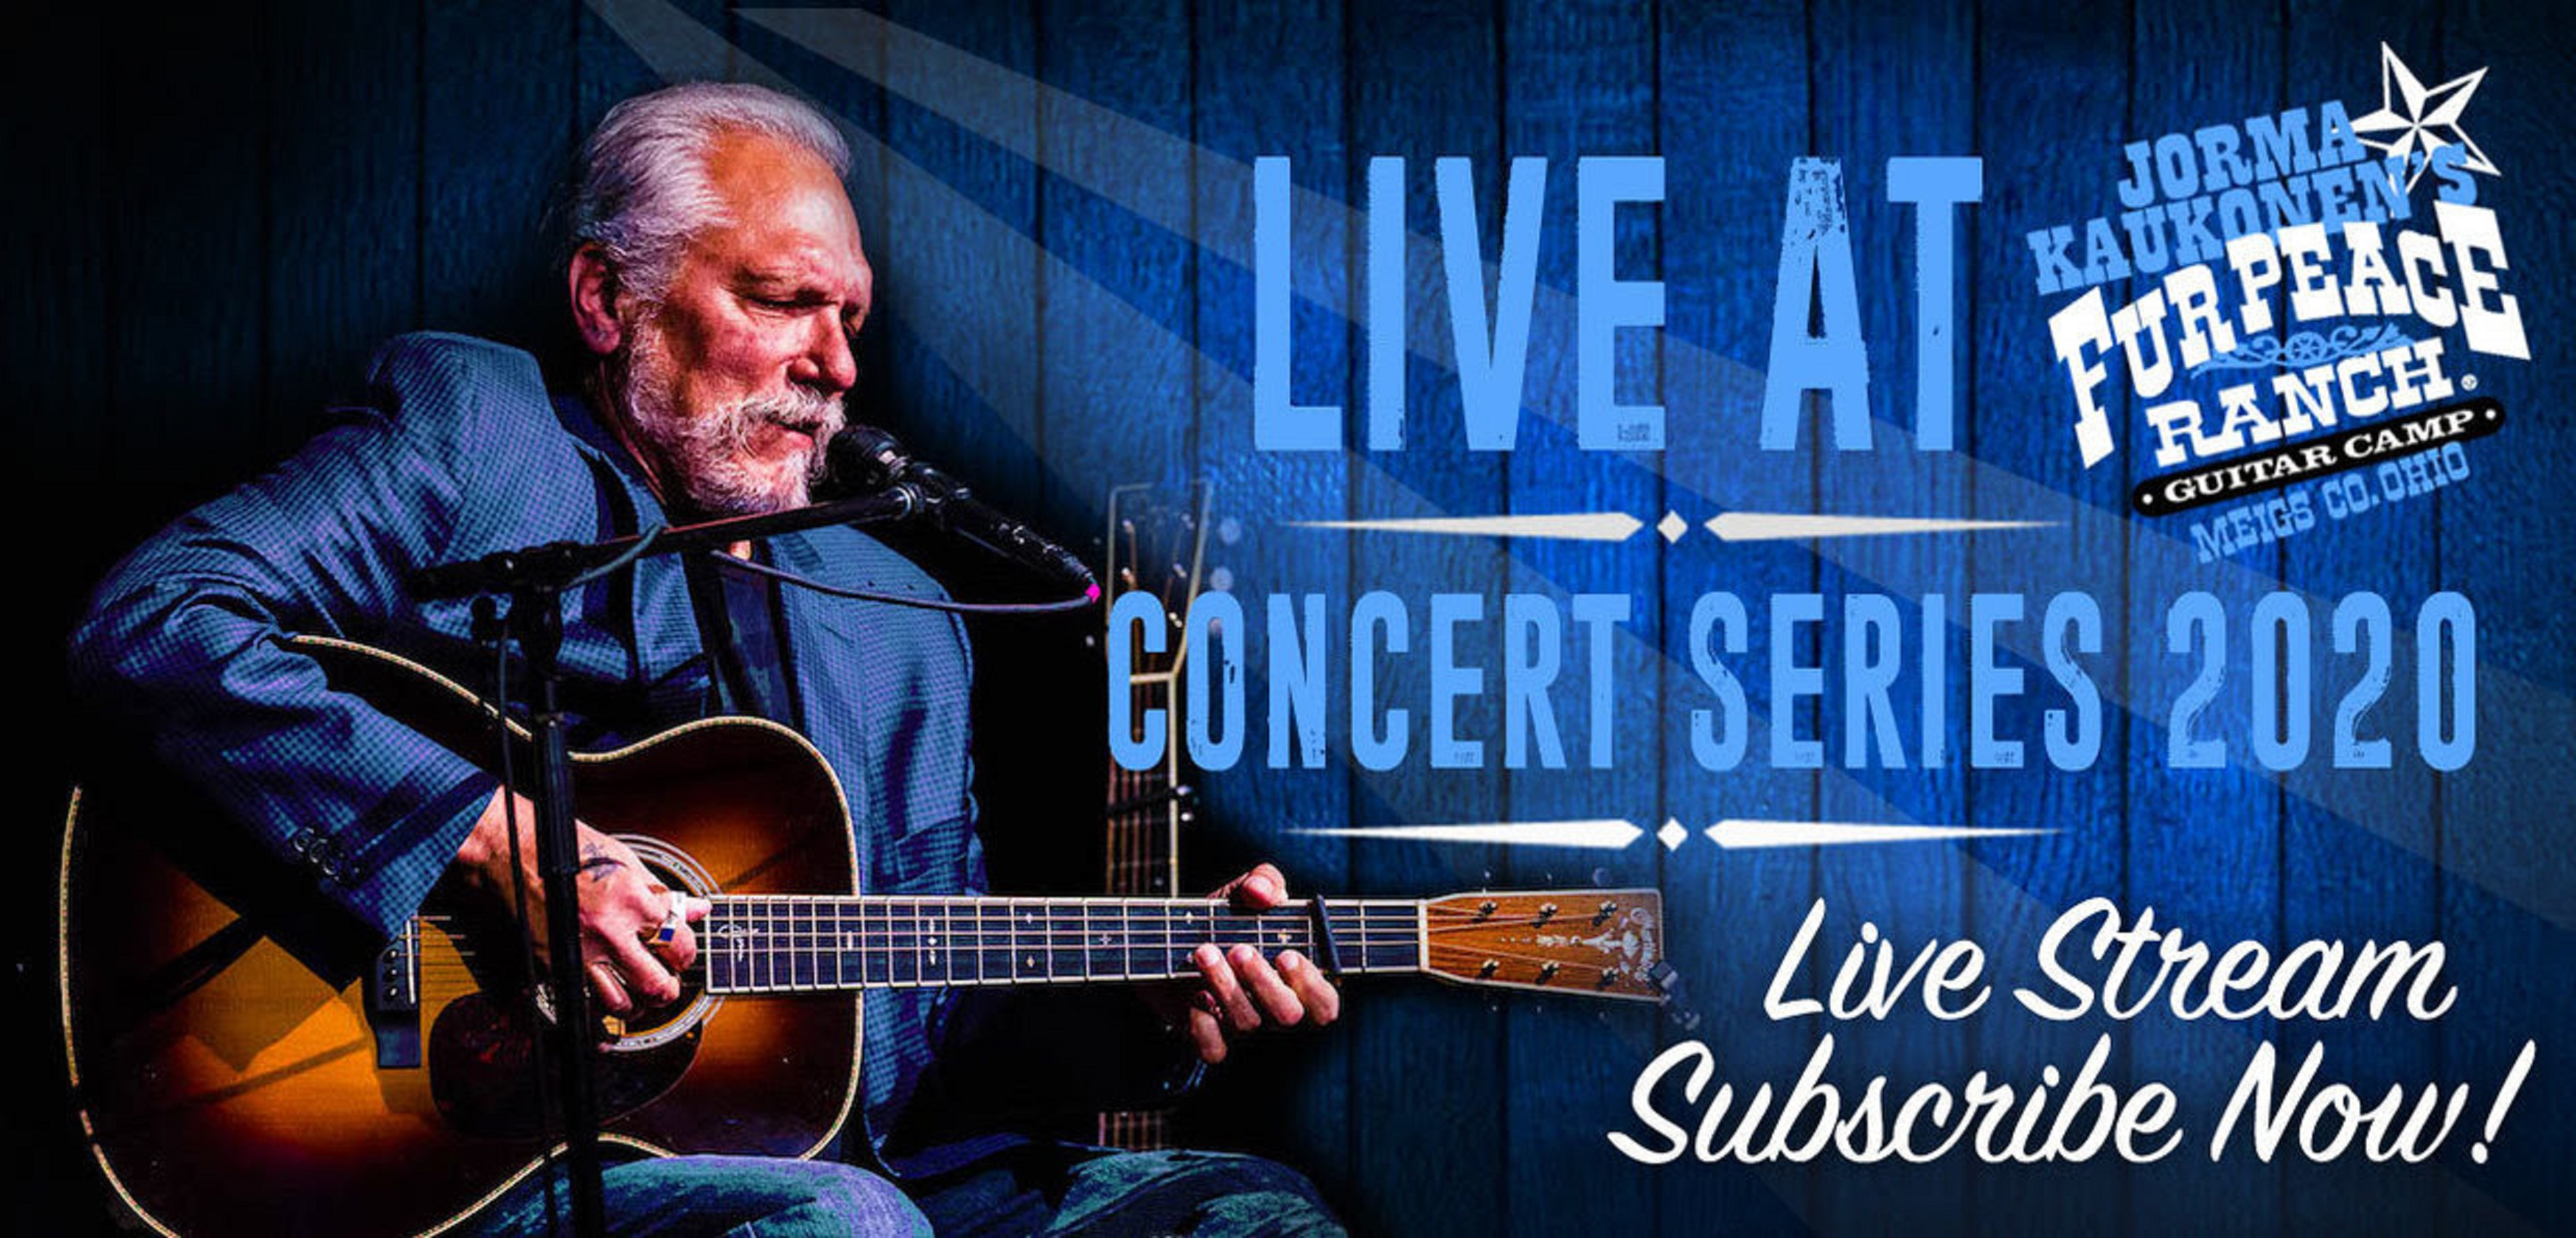 Jorma Kaukonen's Live Stream 5/16 and Hot Tuna Tour Update